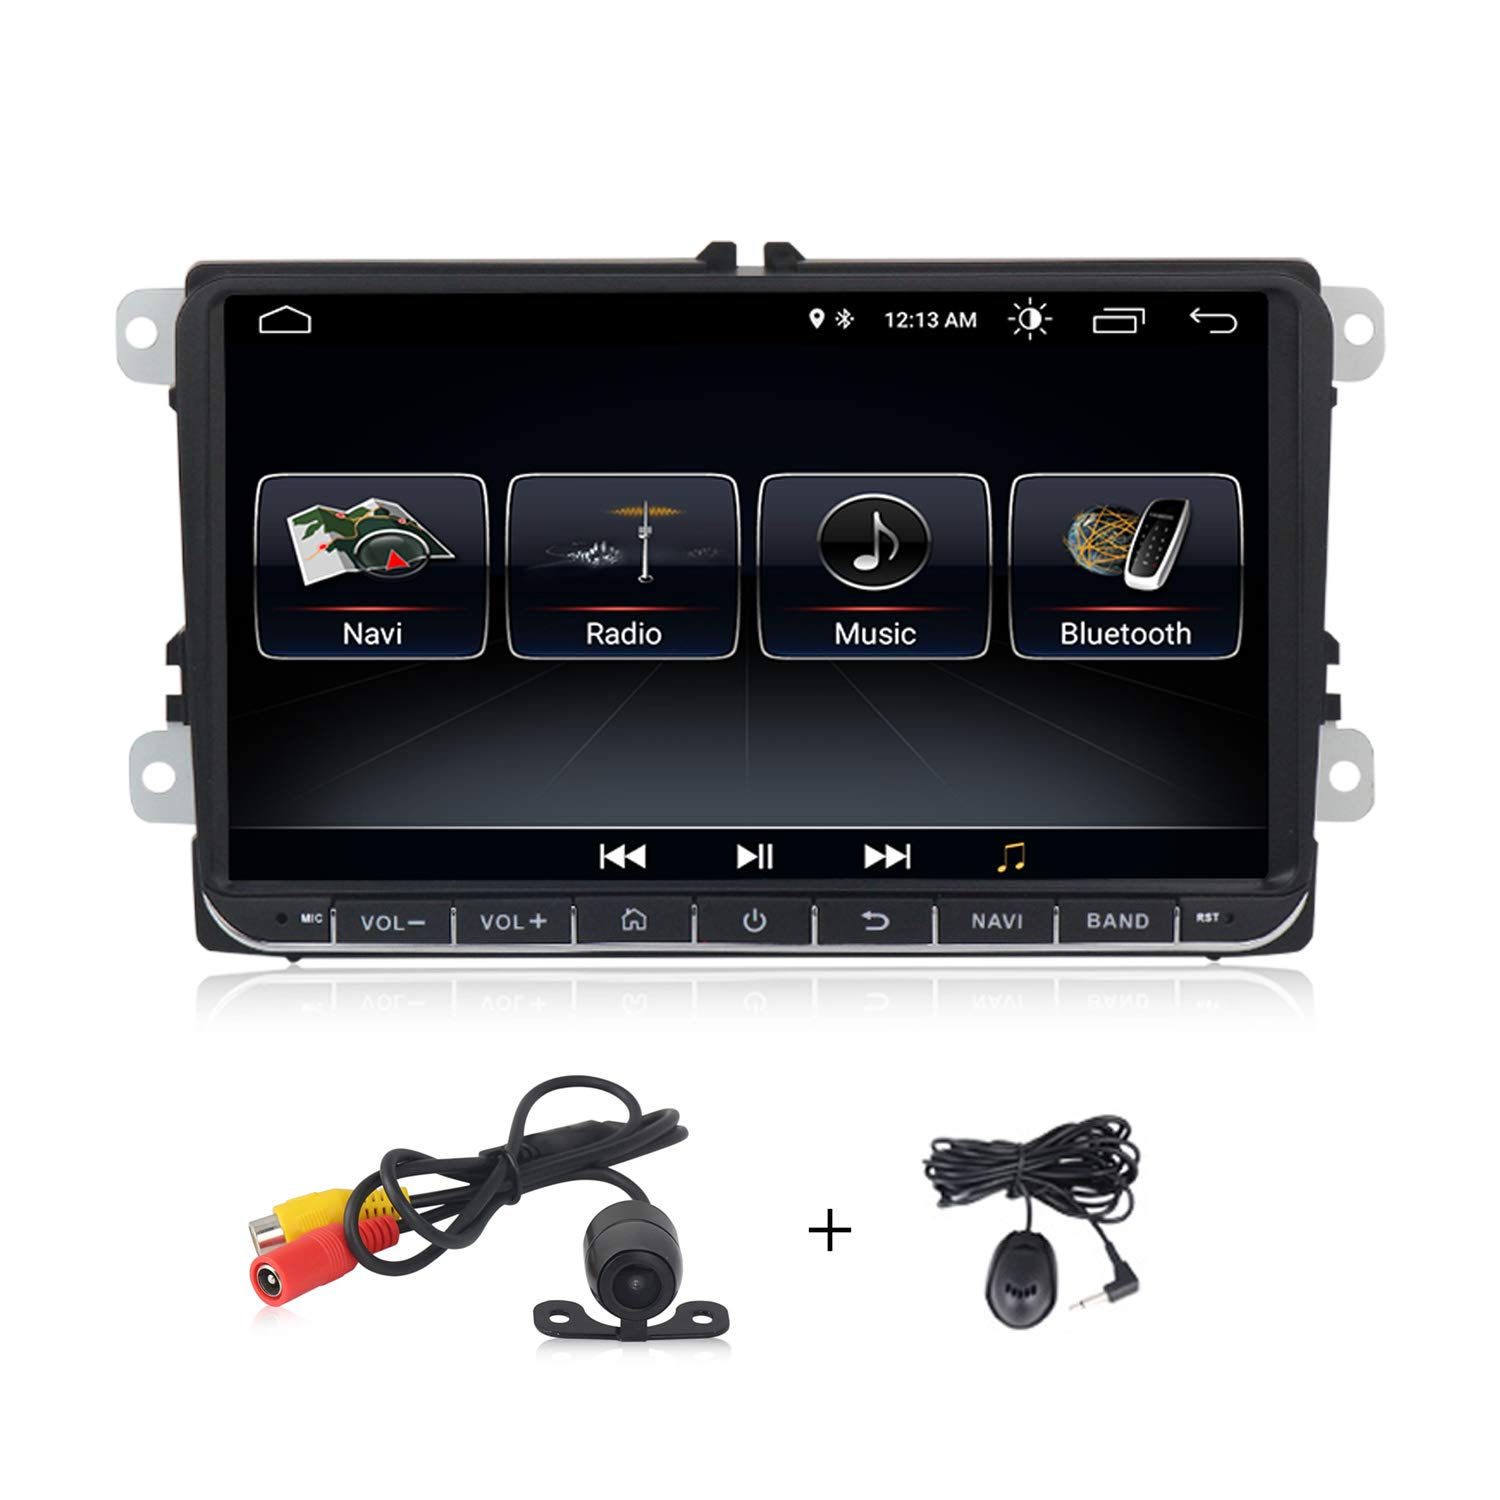 Android 9.0 system 9 inch Car stereo for Volkswagen VW Passat Golf MK5 Jetta Tiguan T5 Skoda Seat GPS Car Navigation GPS Radio by MekedeTech